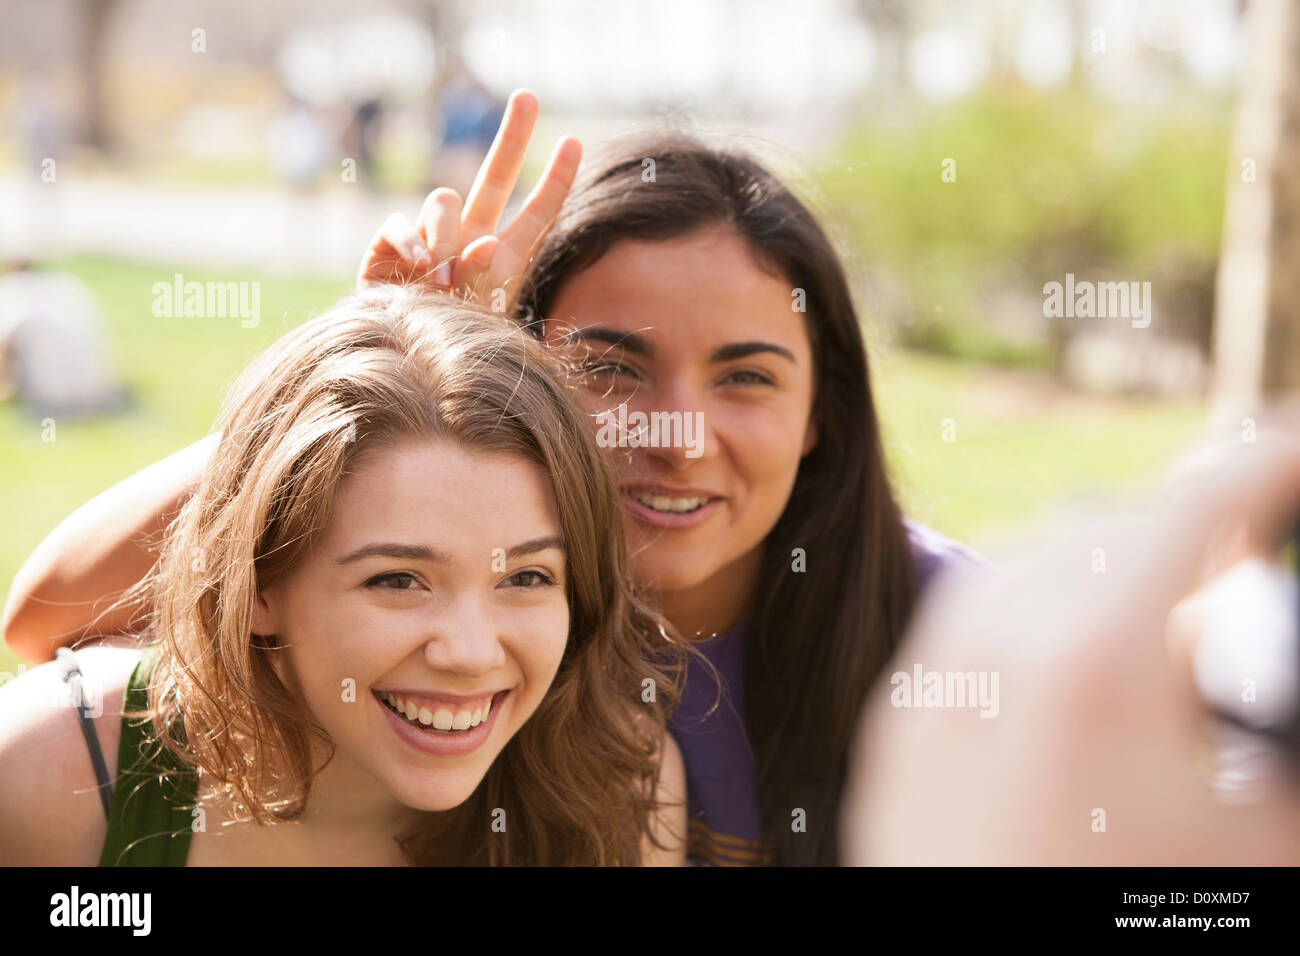 Two young women having their picture taken - Stock Image